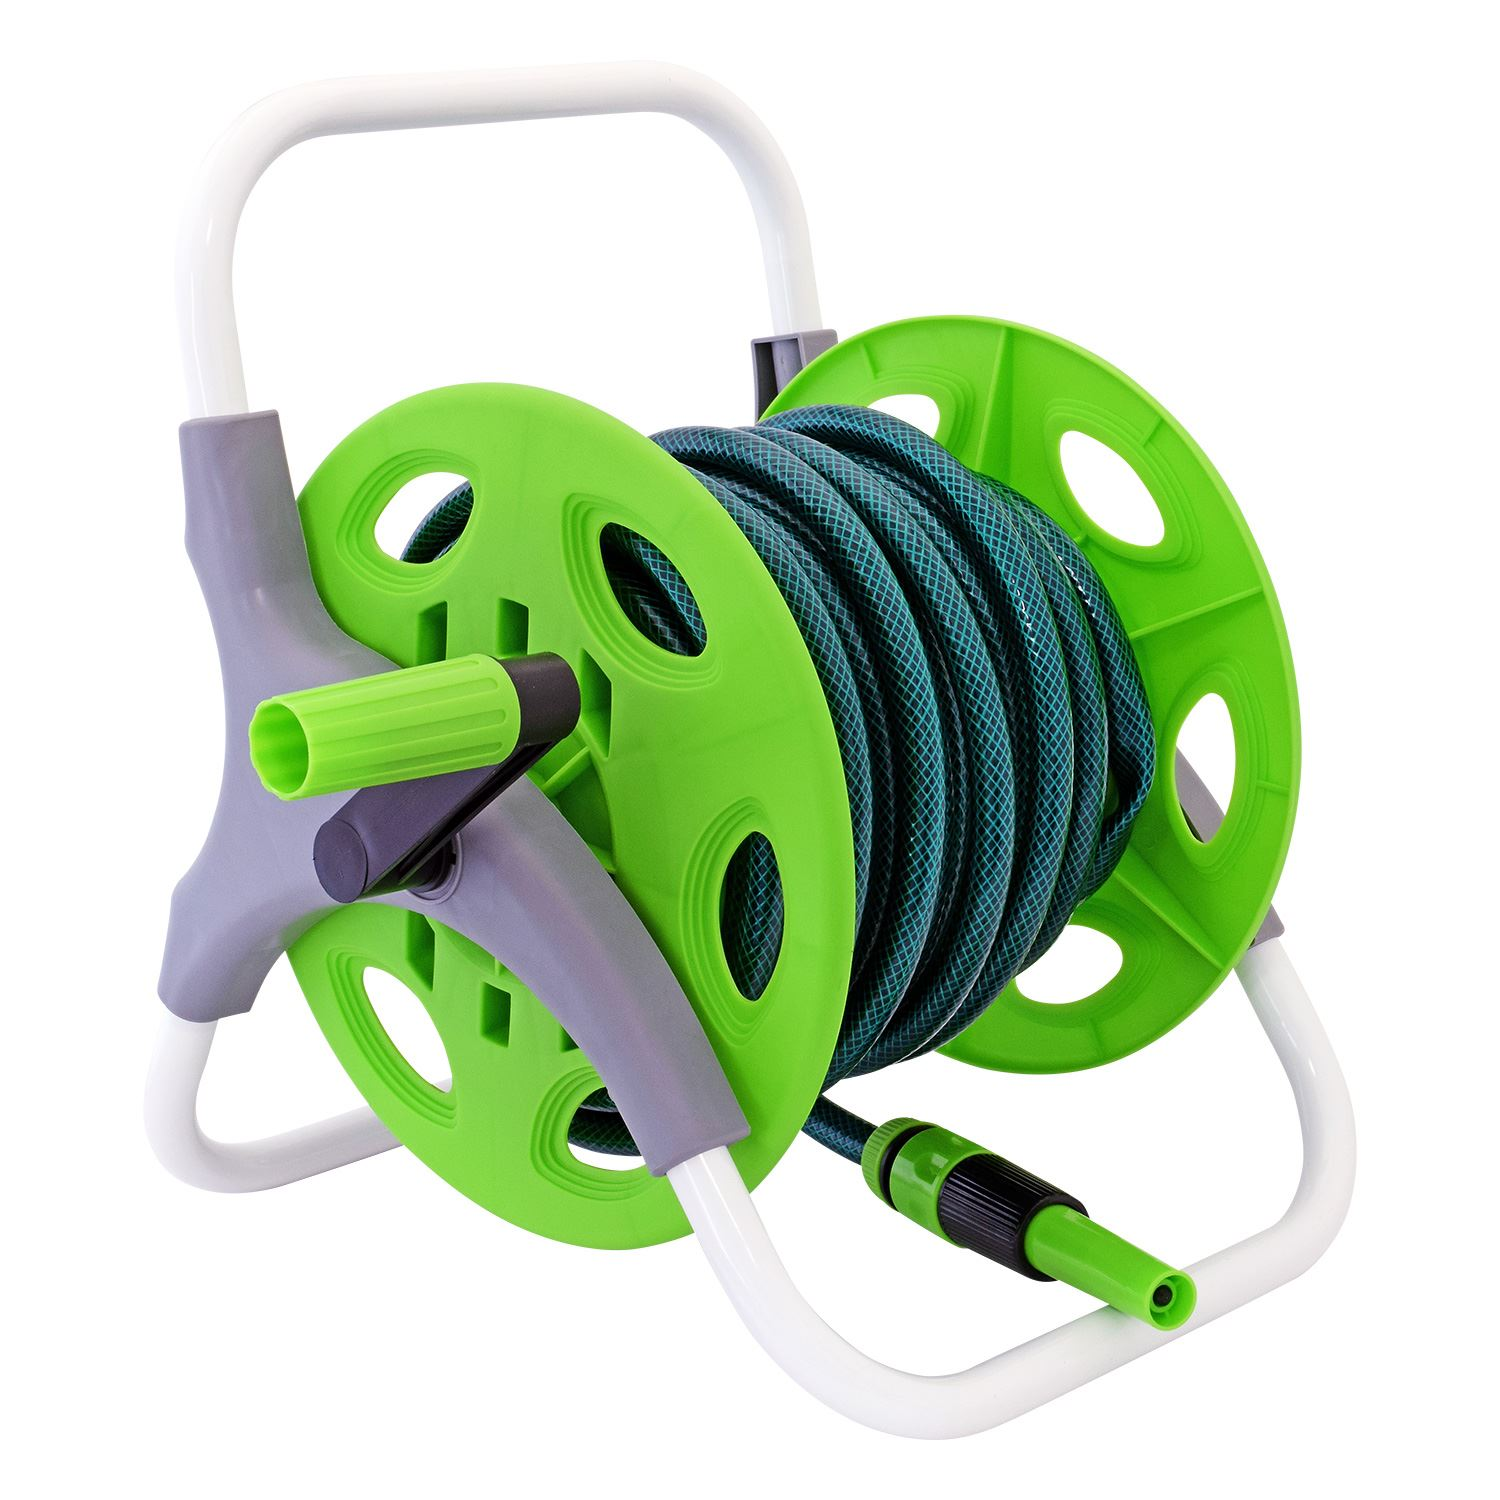 15m-25m-60m-Flat-Hose-Pipe-Reel-Trolley-  sc 1 st  eBay : hose pipe on reel - www.happyfamilyinstitute.com